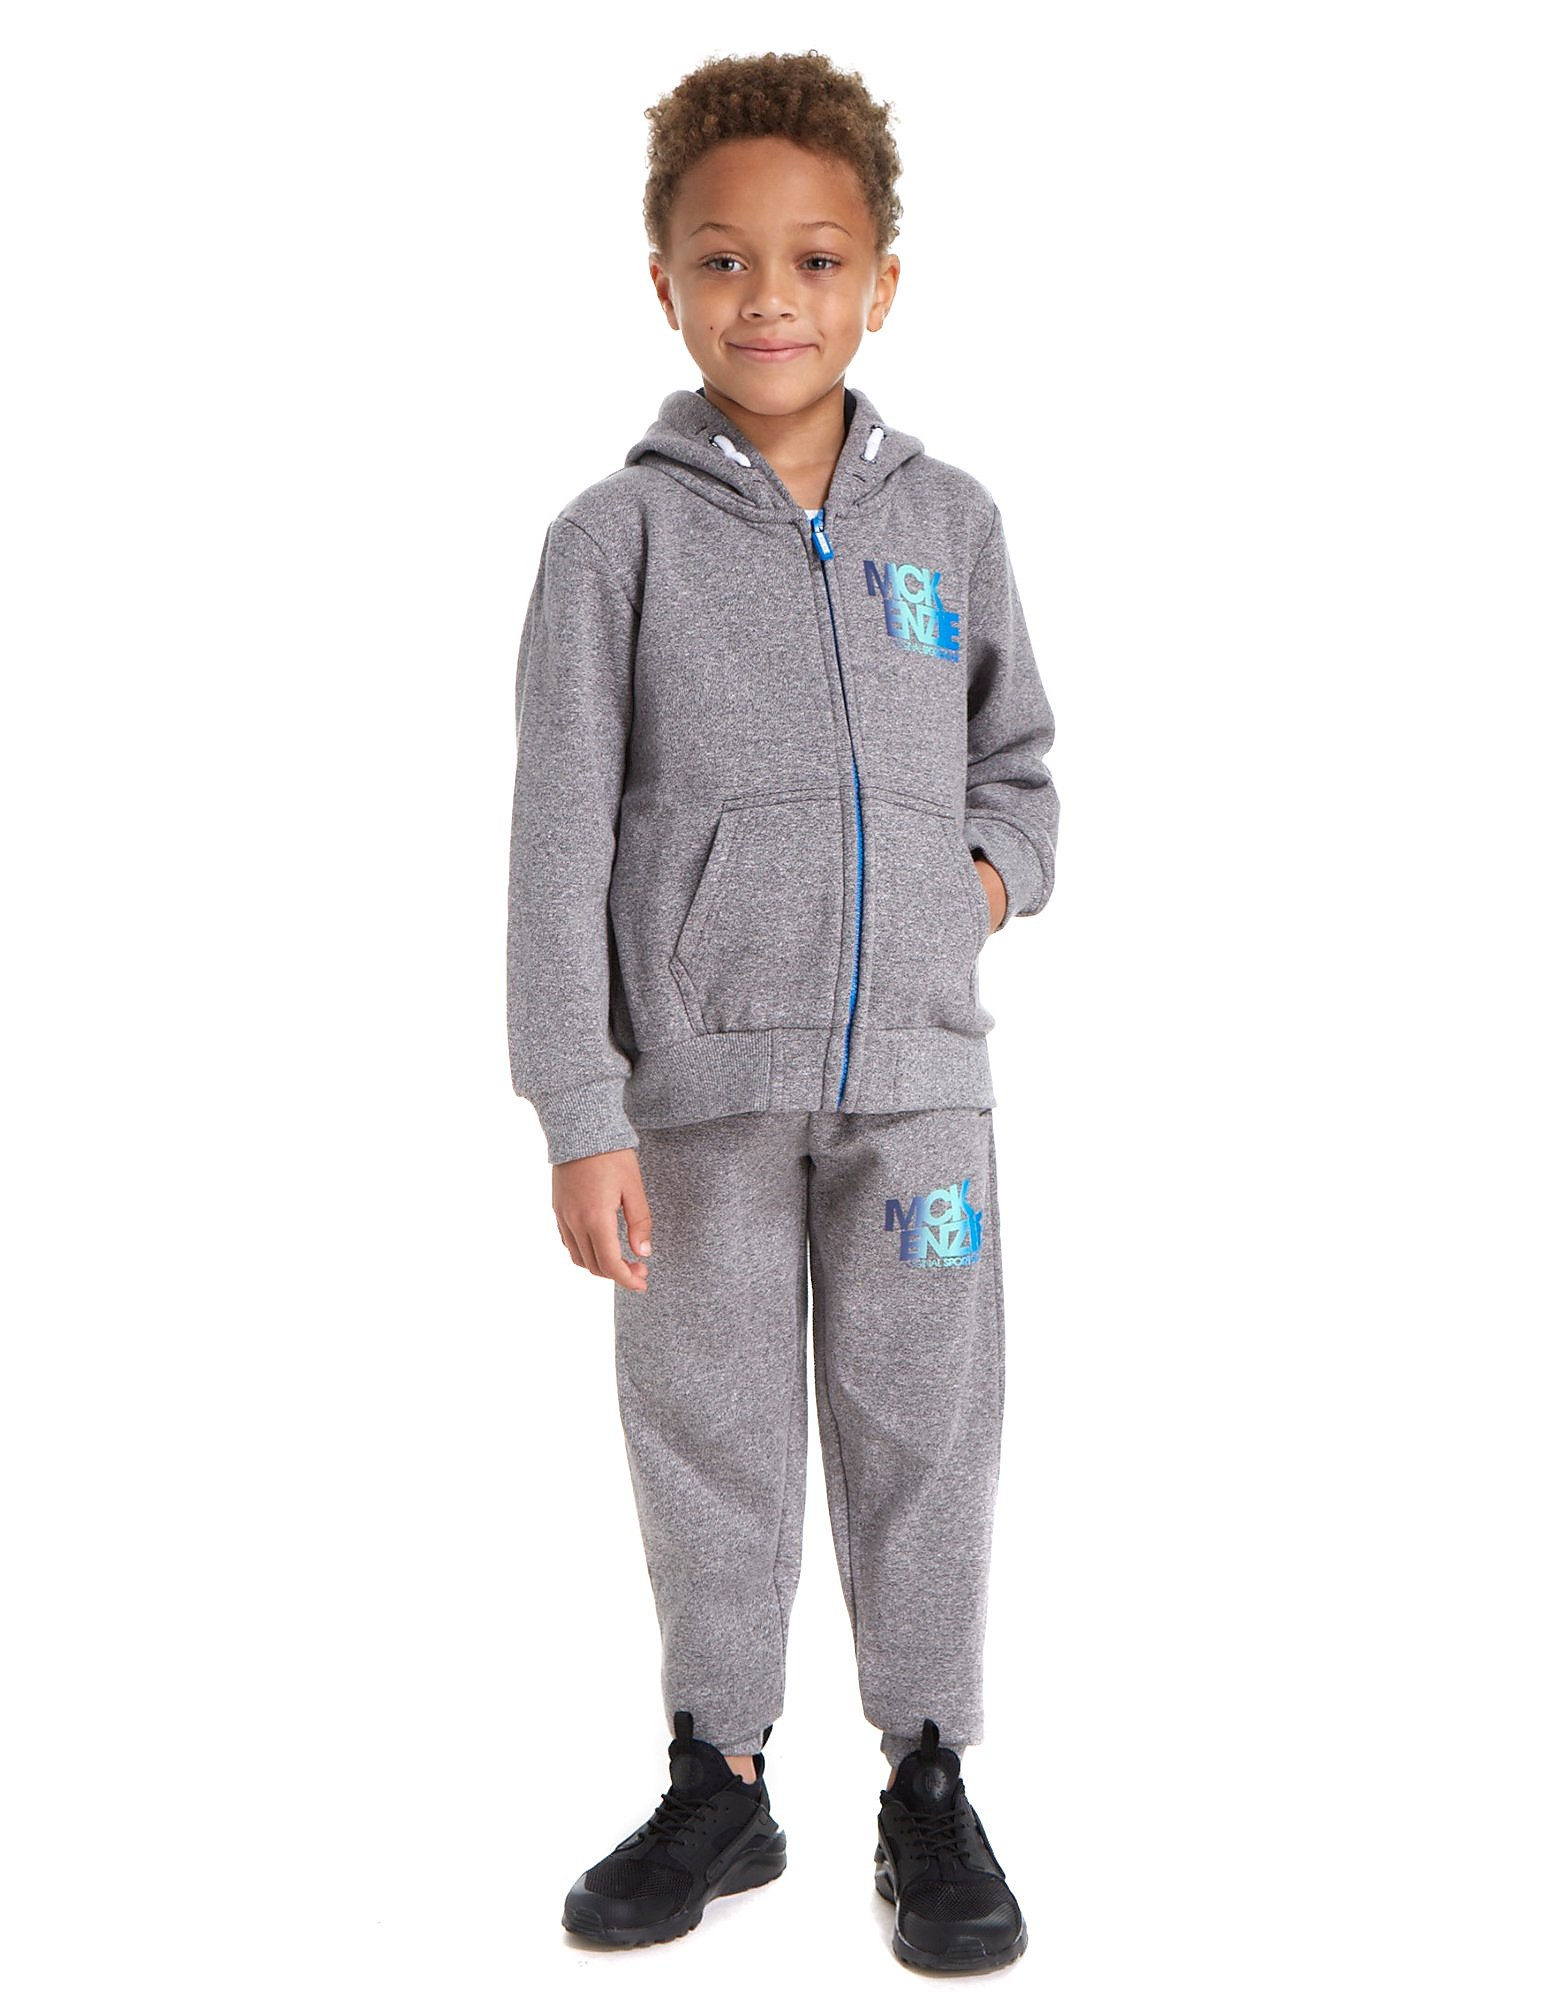 McKenzie Waldo Fleece Suit Children